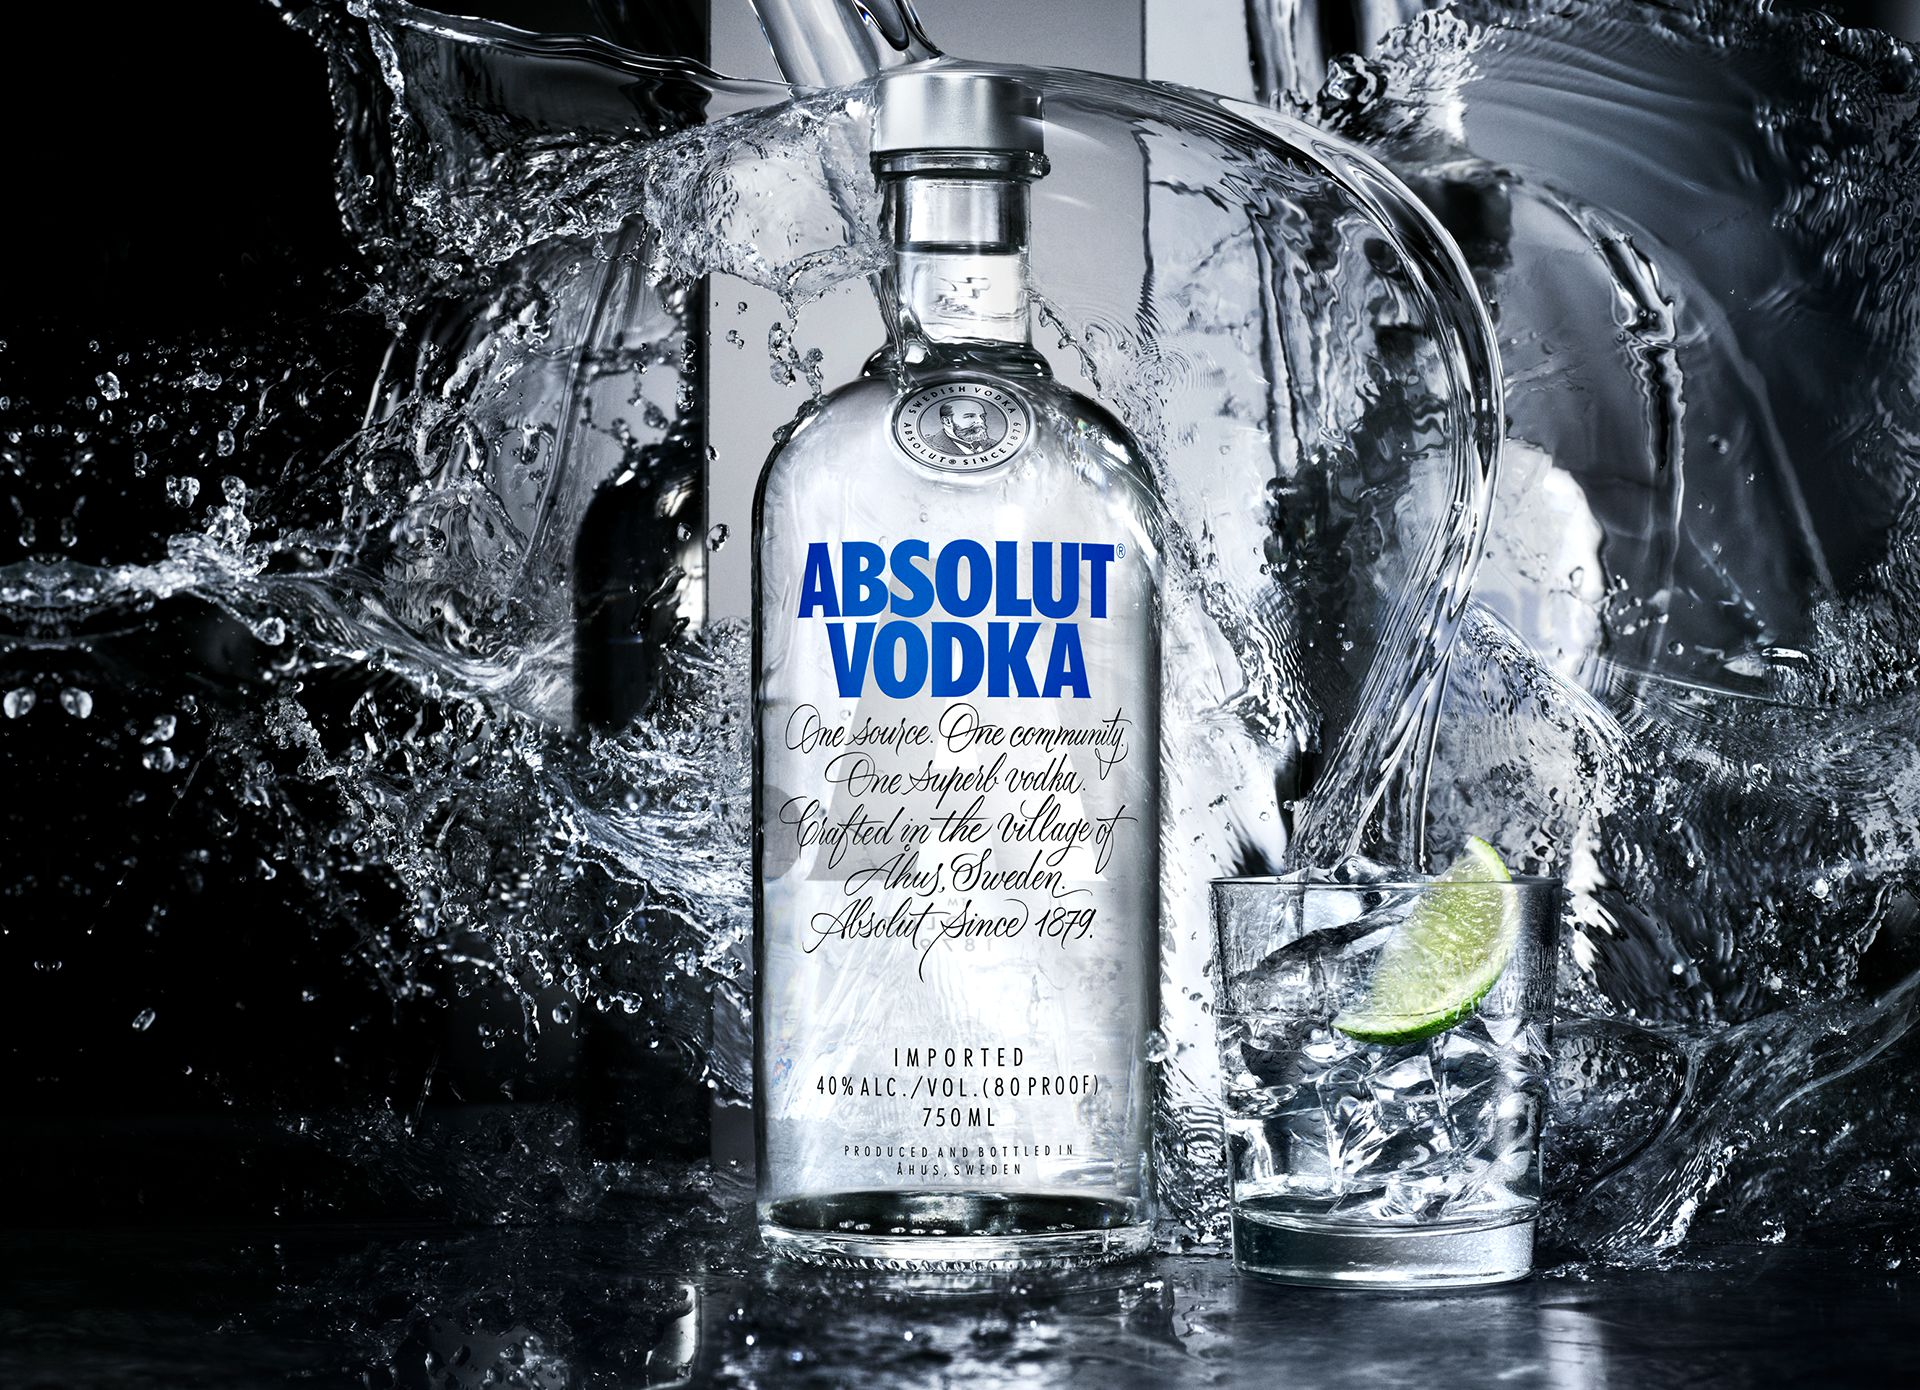 about Absolut vodka